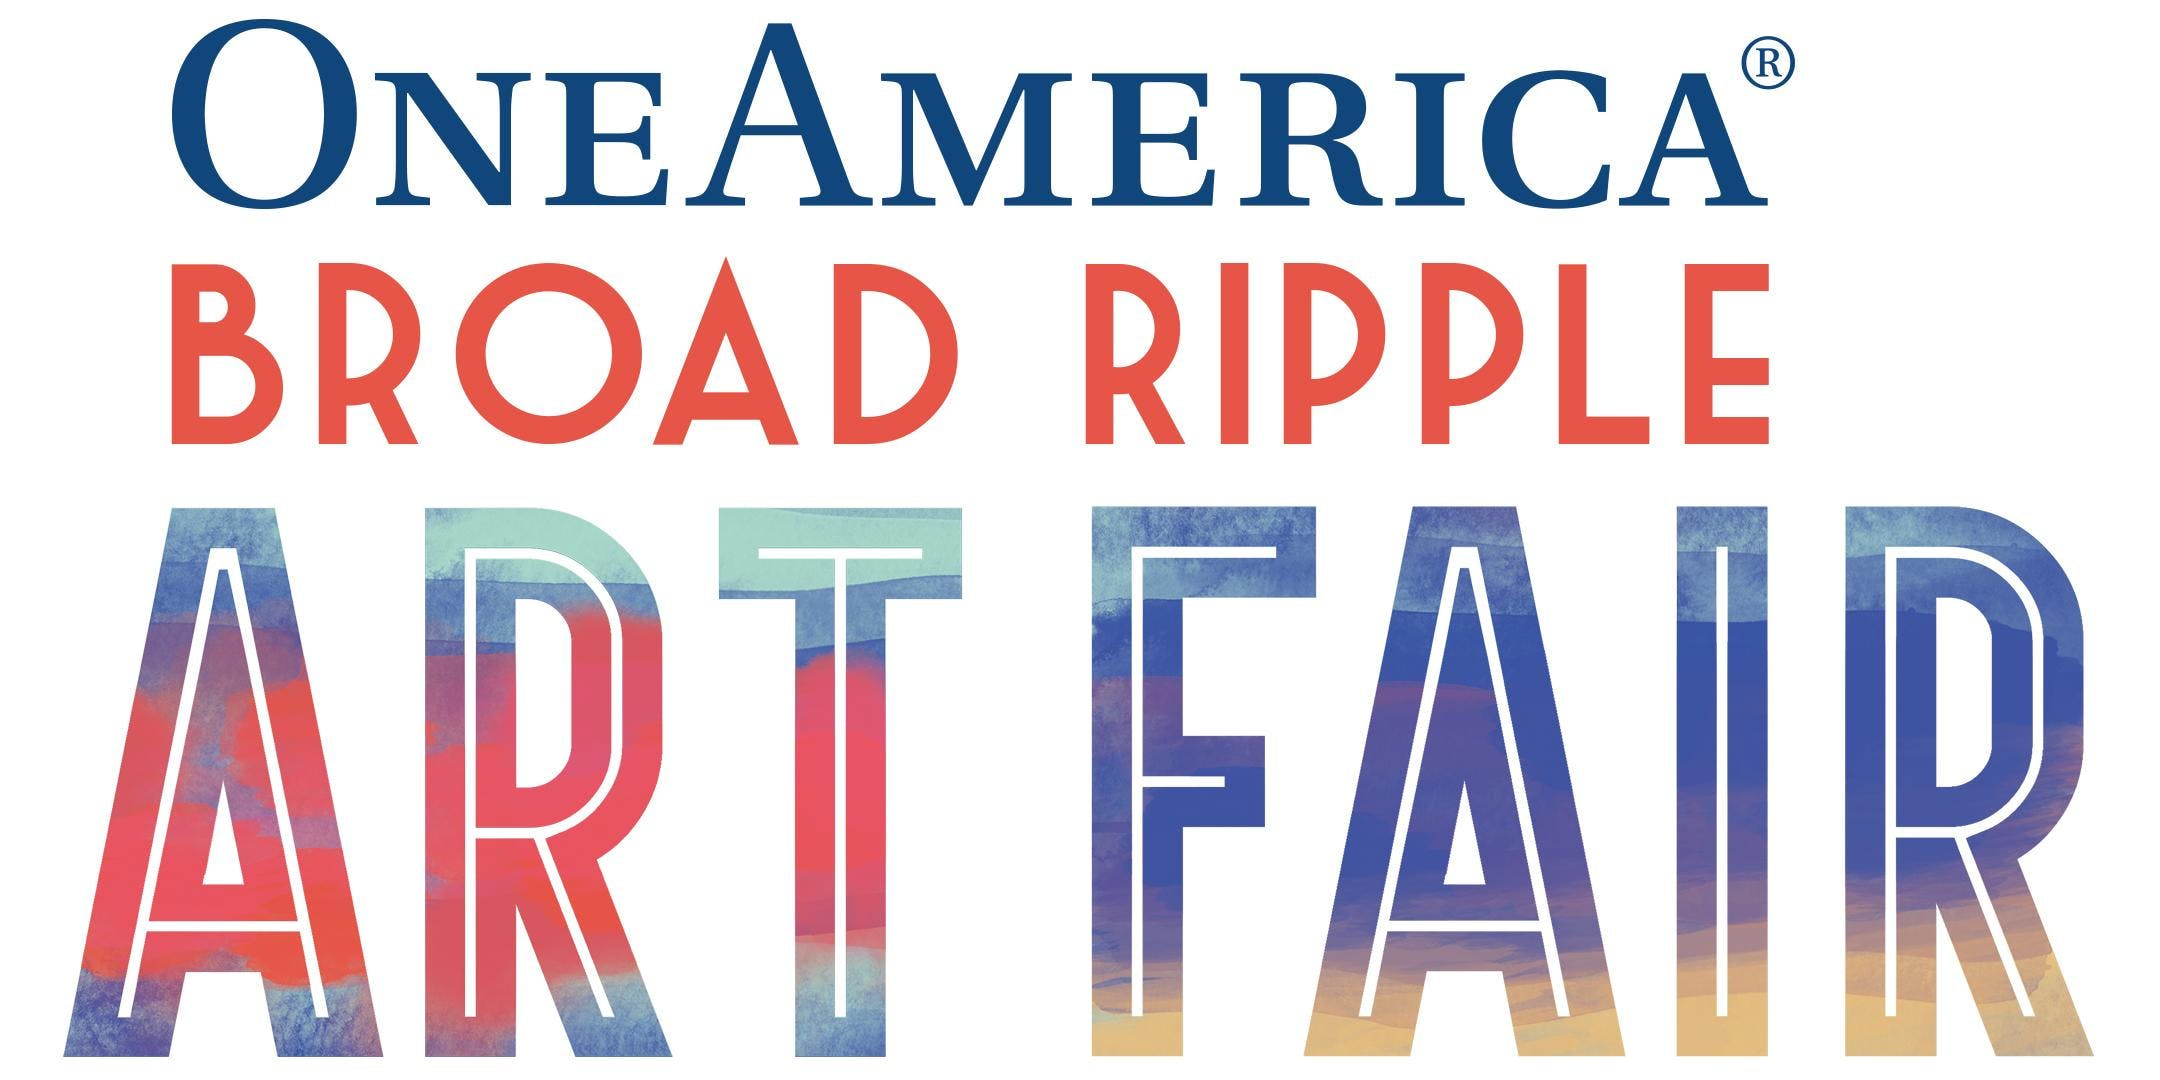 OneAmerica Broad Ripple Art Fair @ the Indianapolis Art Center May ...